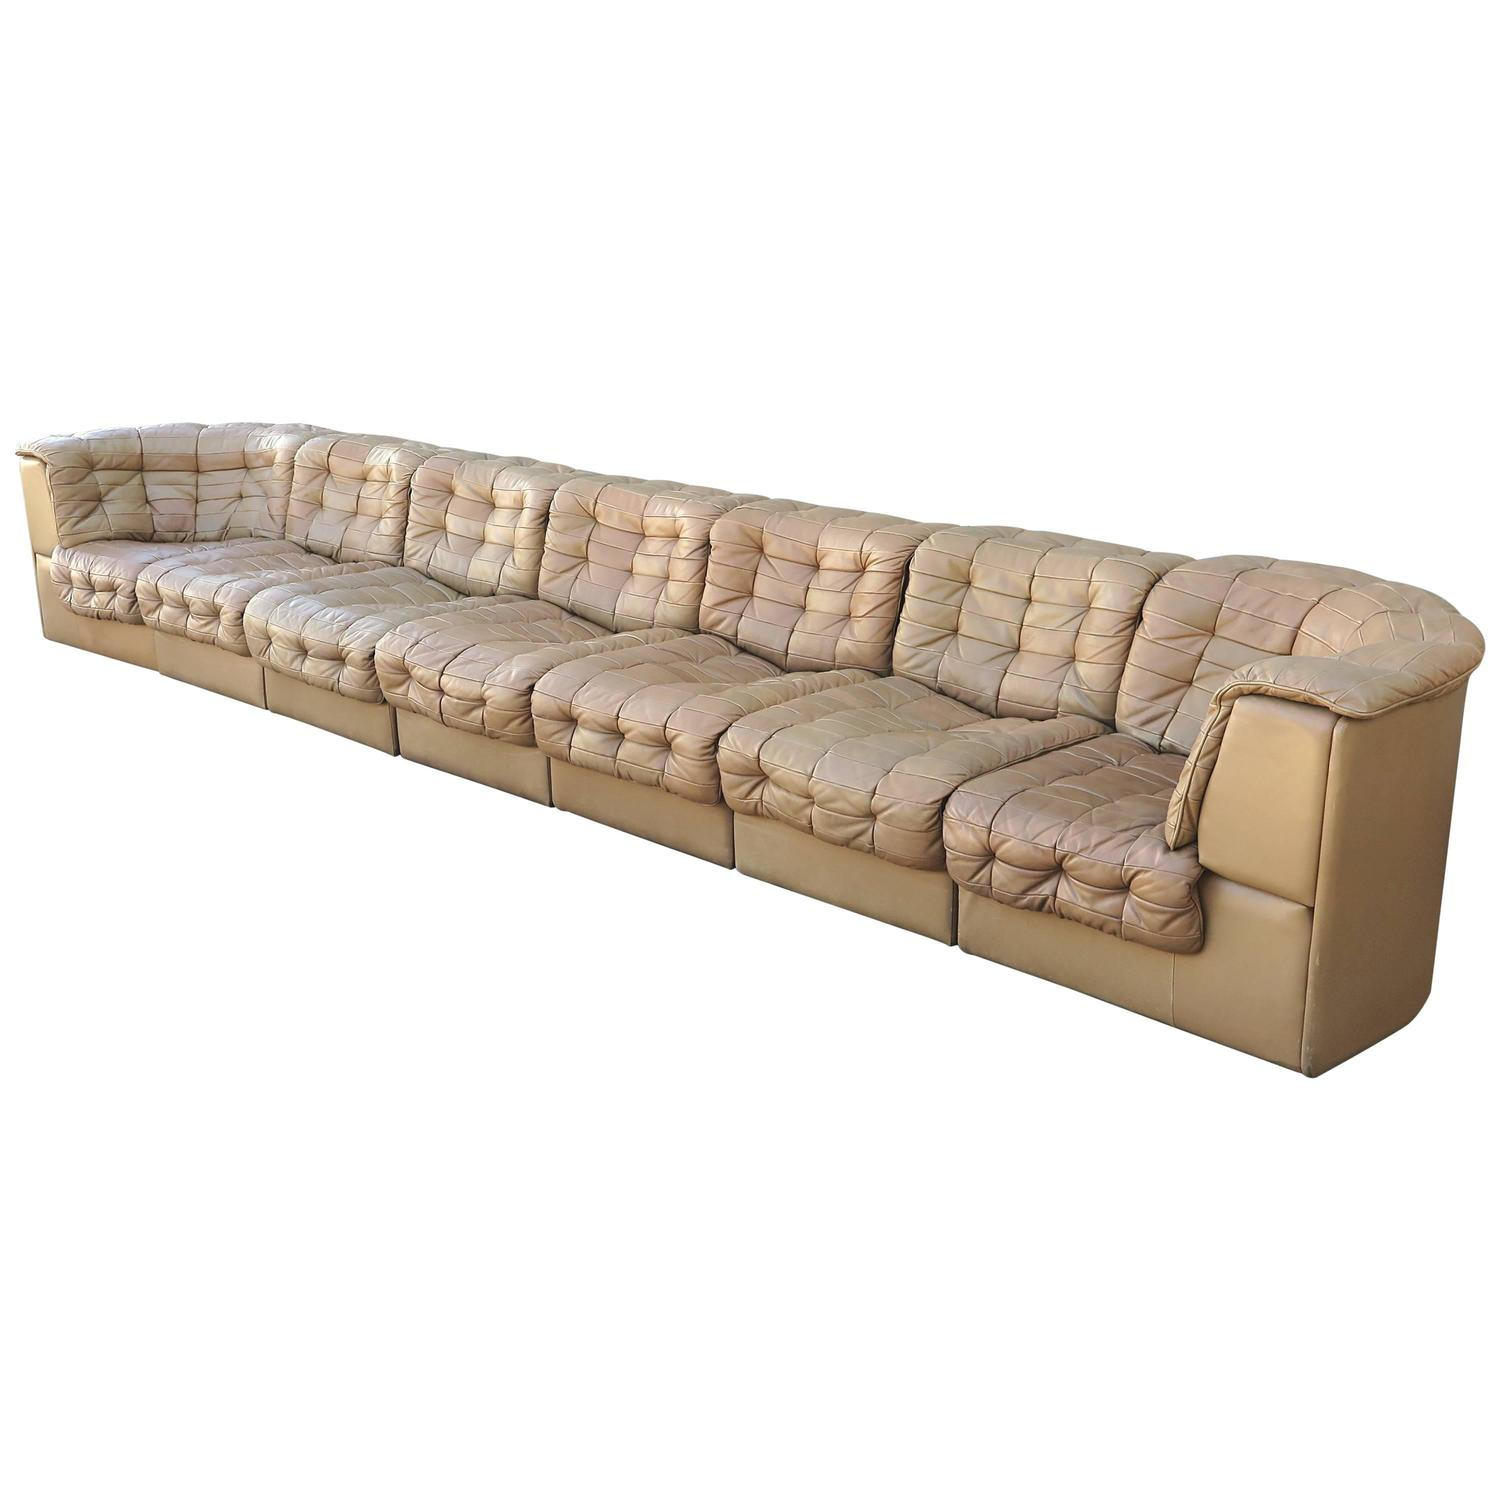 de sede light brown leather modular sofa for sale at 1stdibs